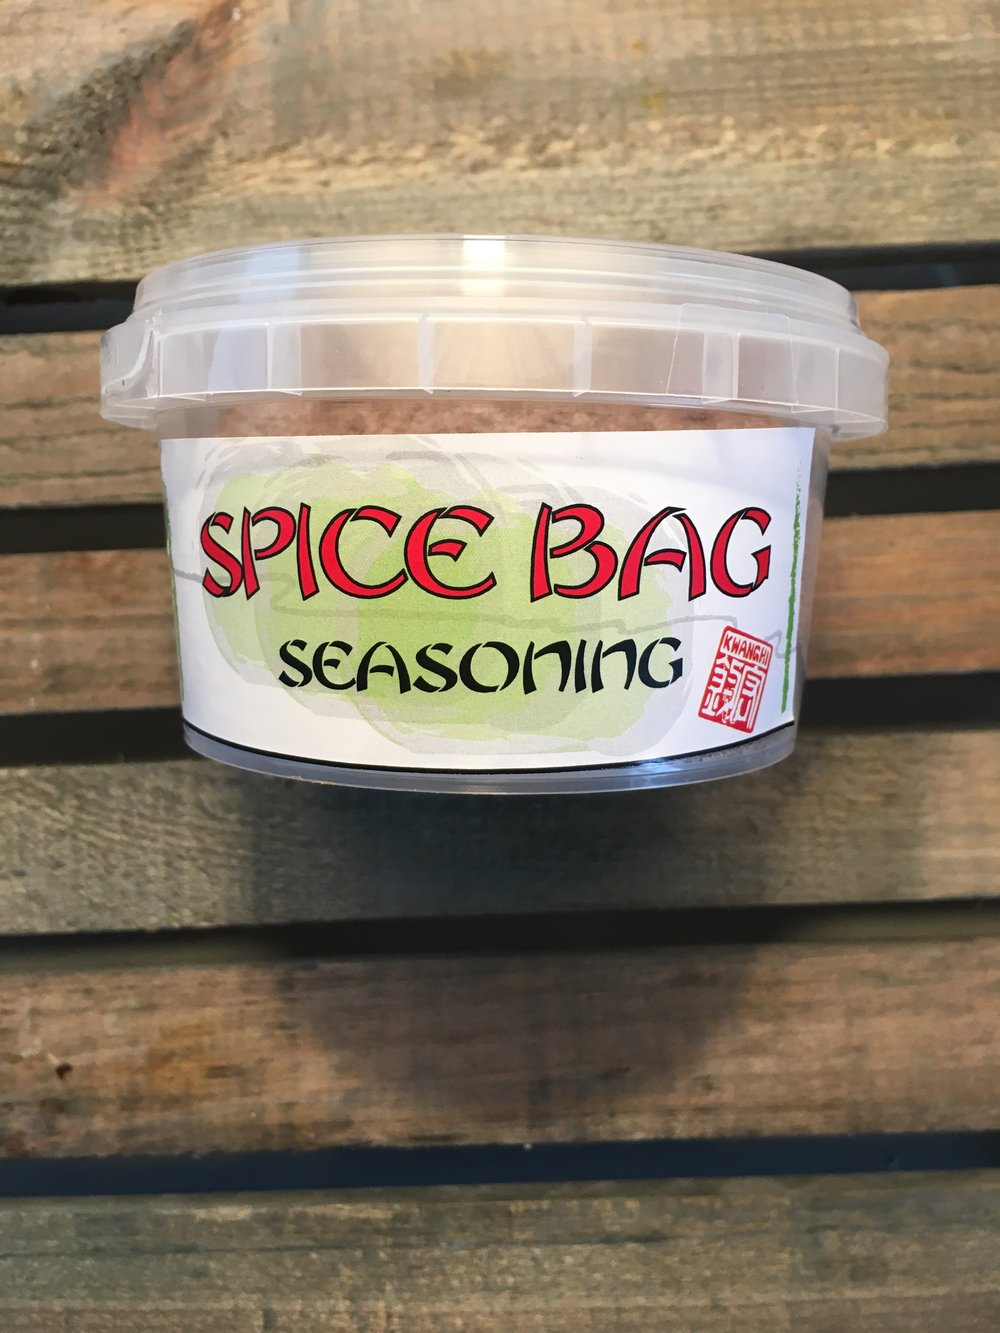 "Home of the Famous "" Spice Bag Seasoning """